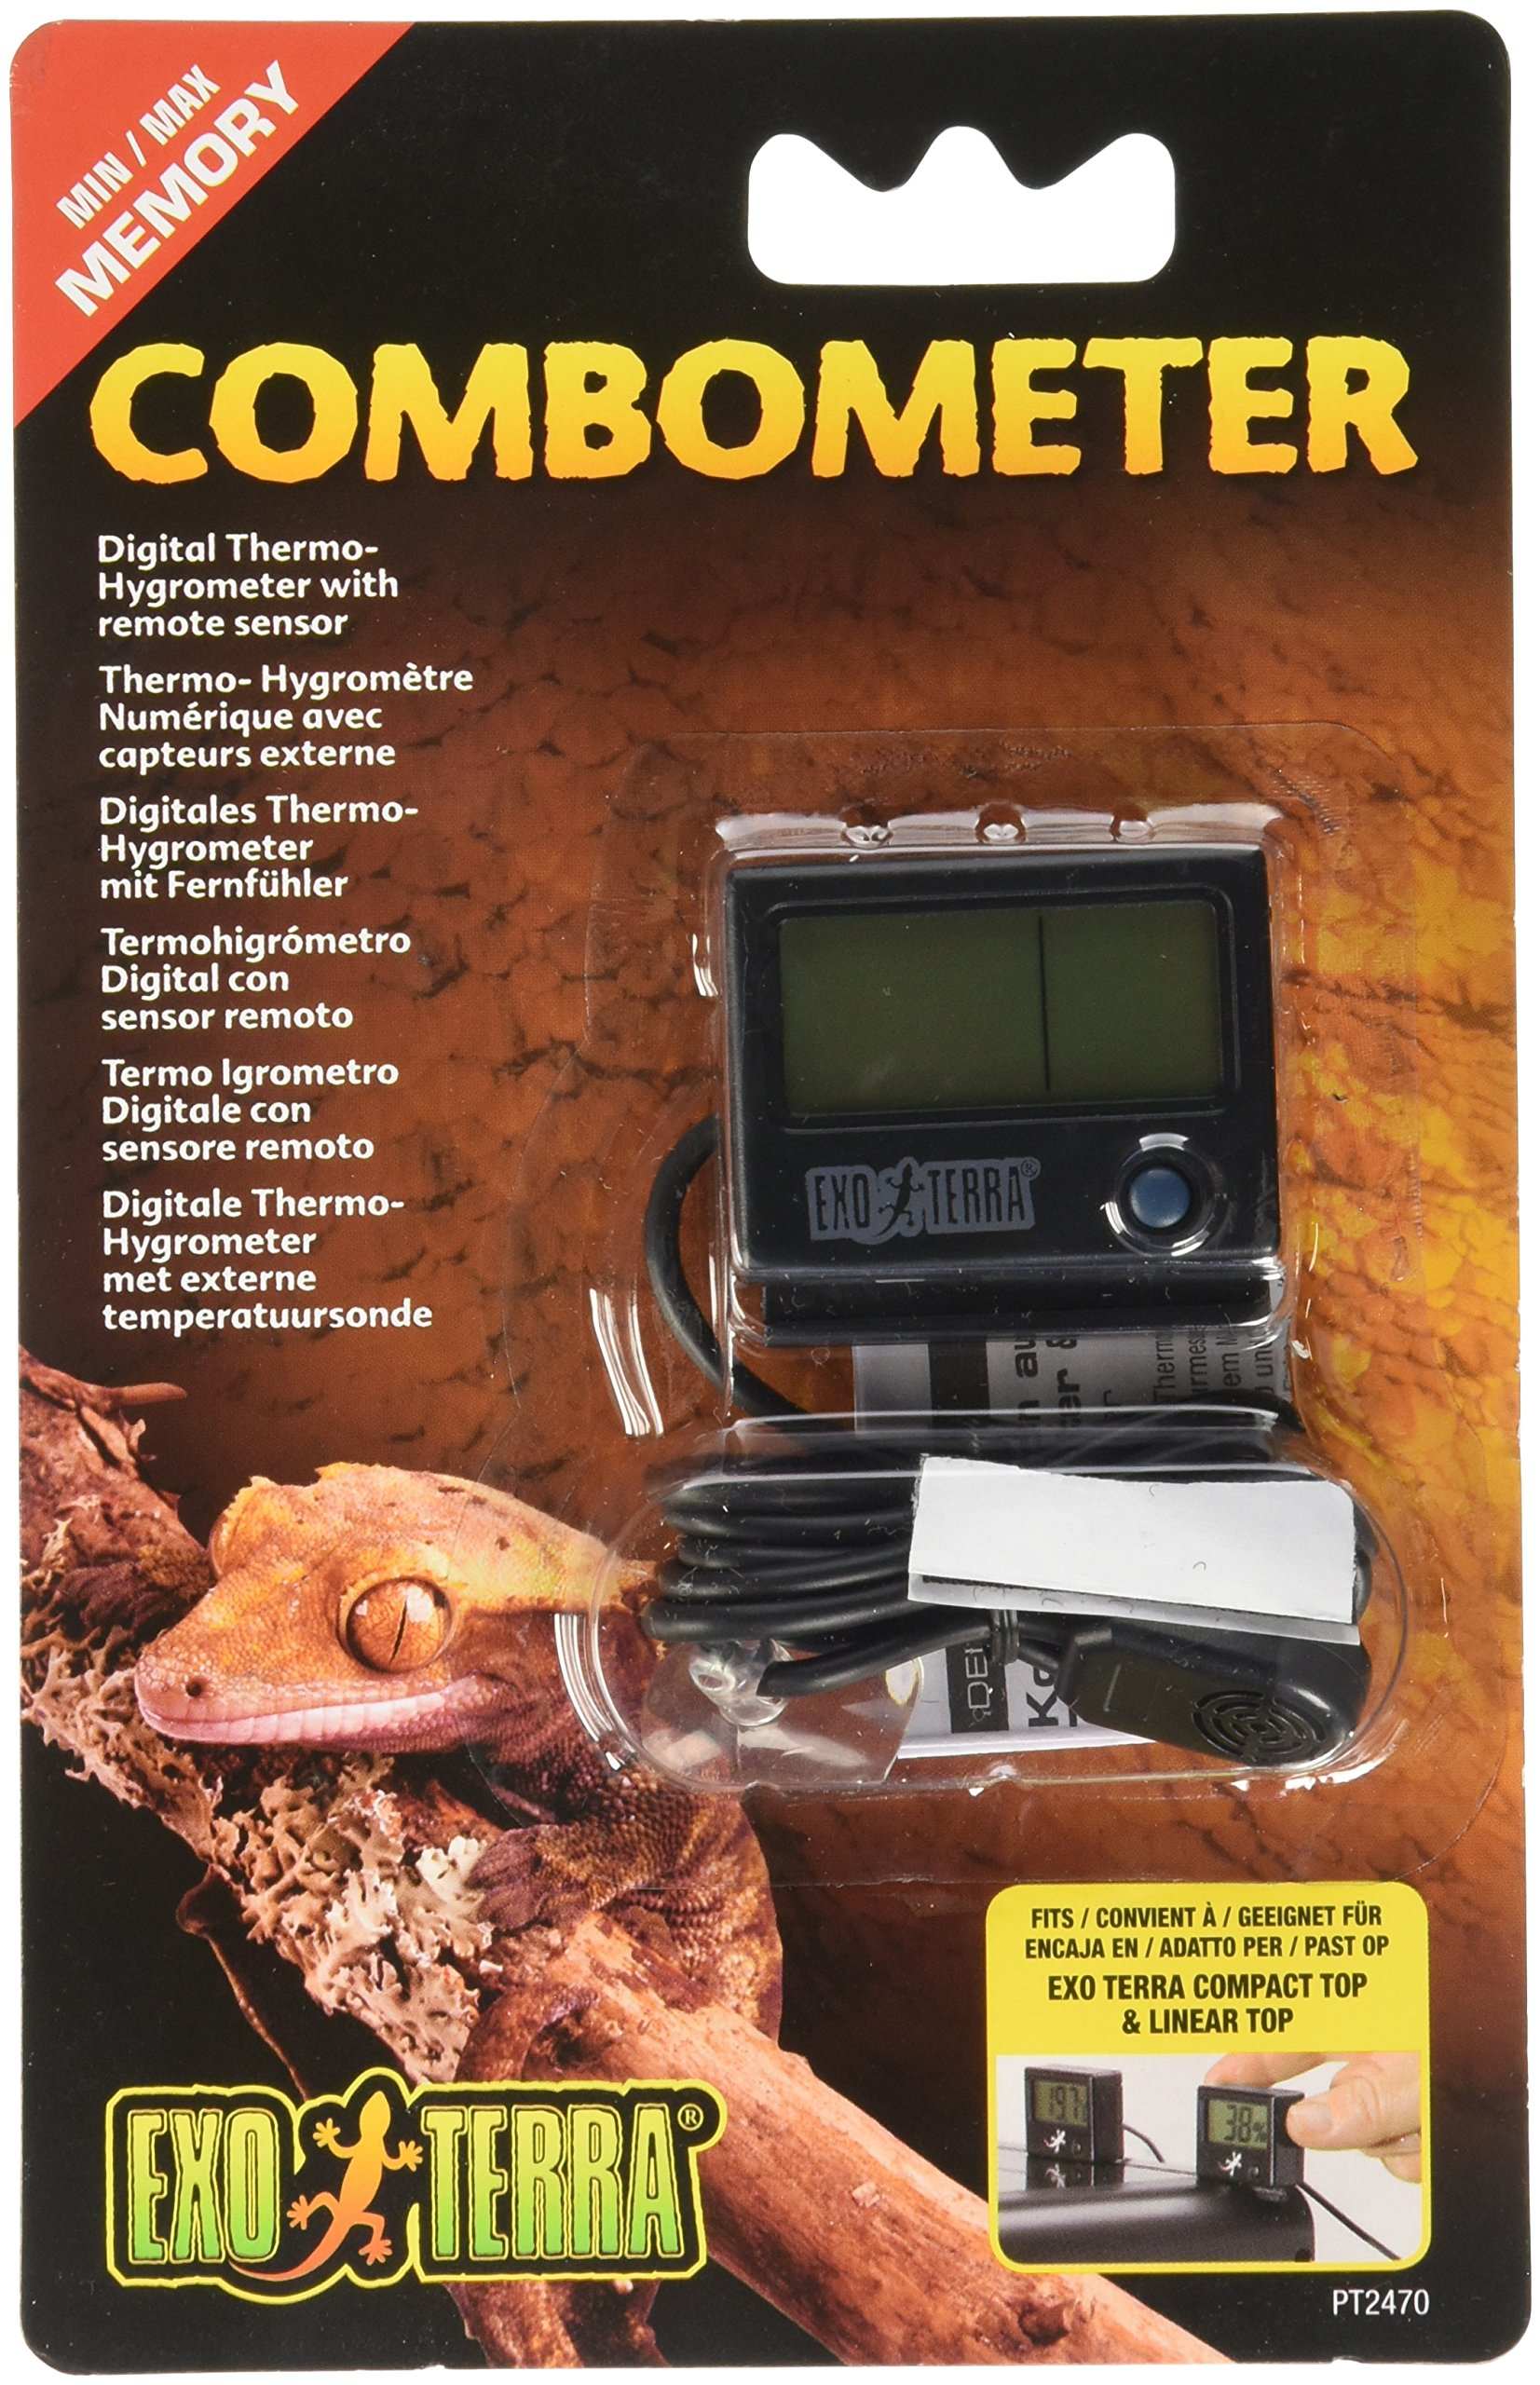 Exo Terra Digital Combination Thermometer/Hygrometer